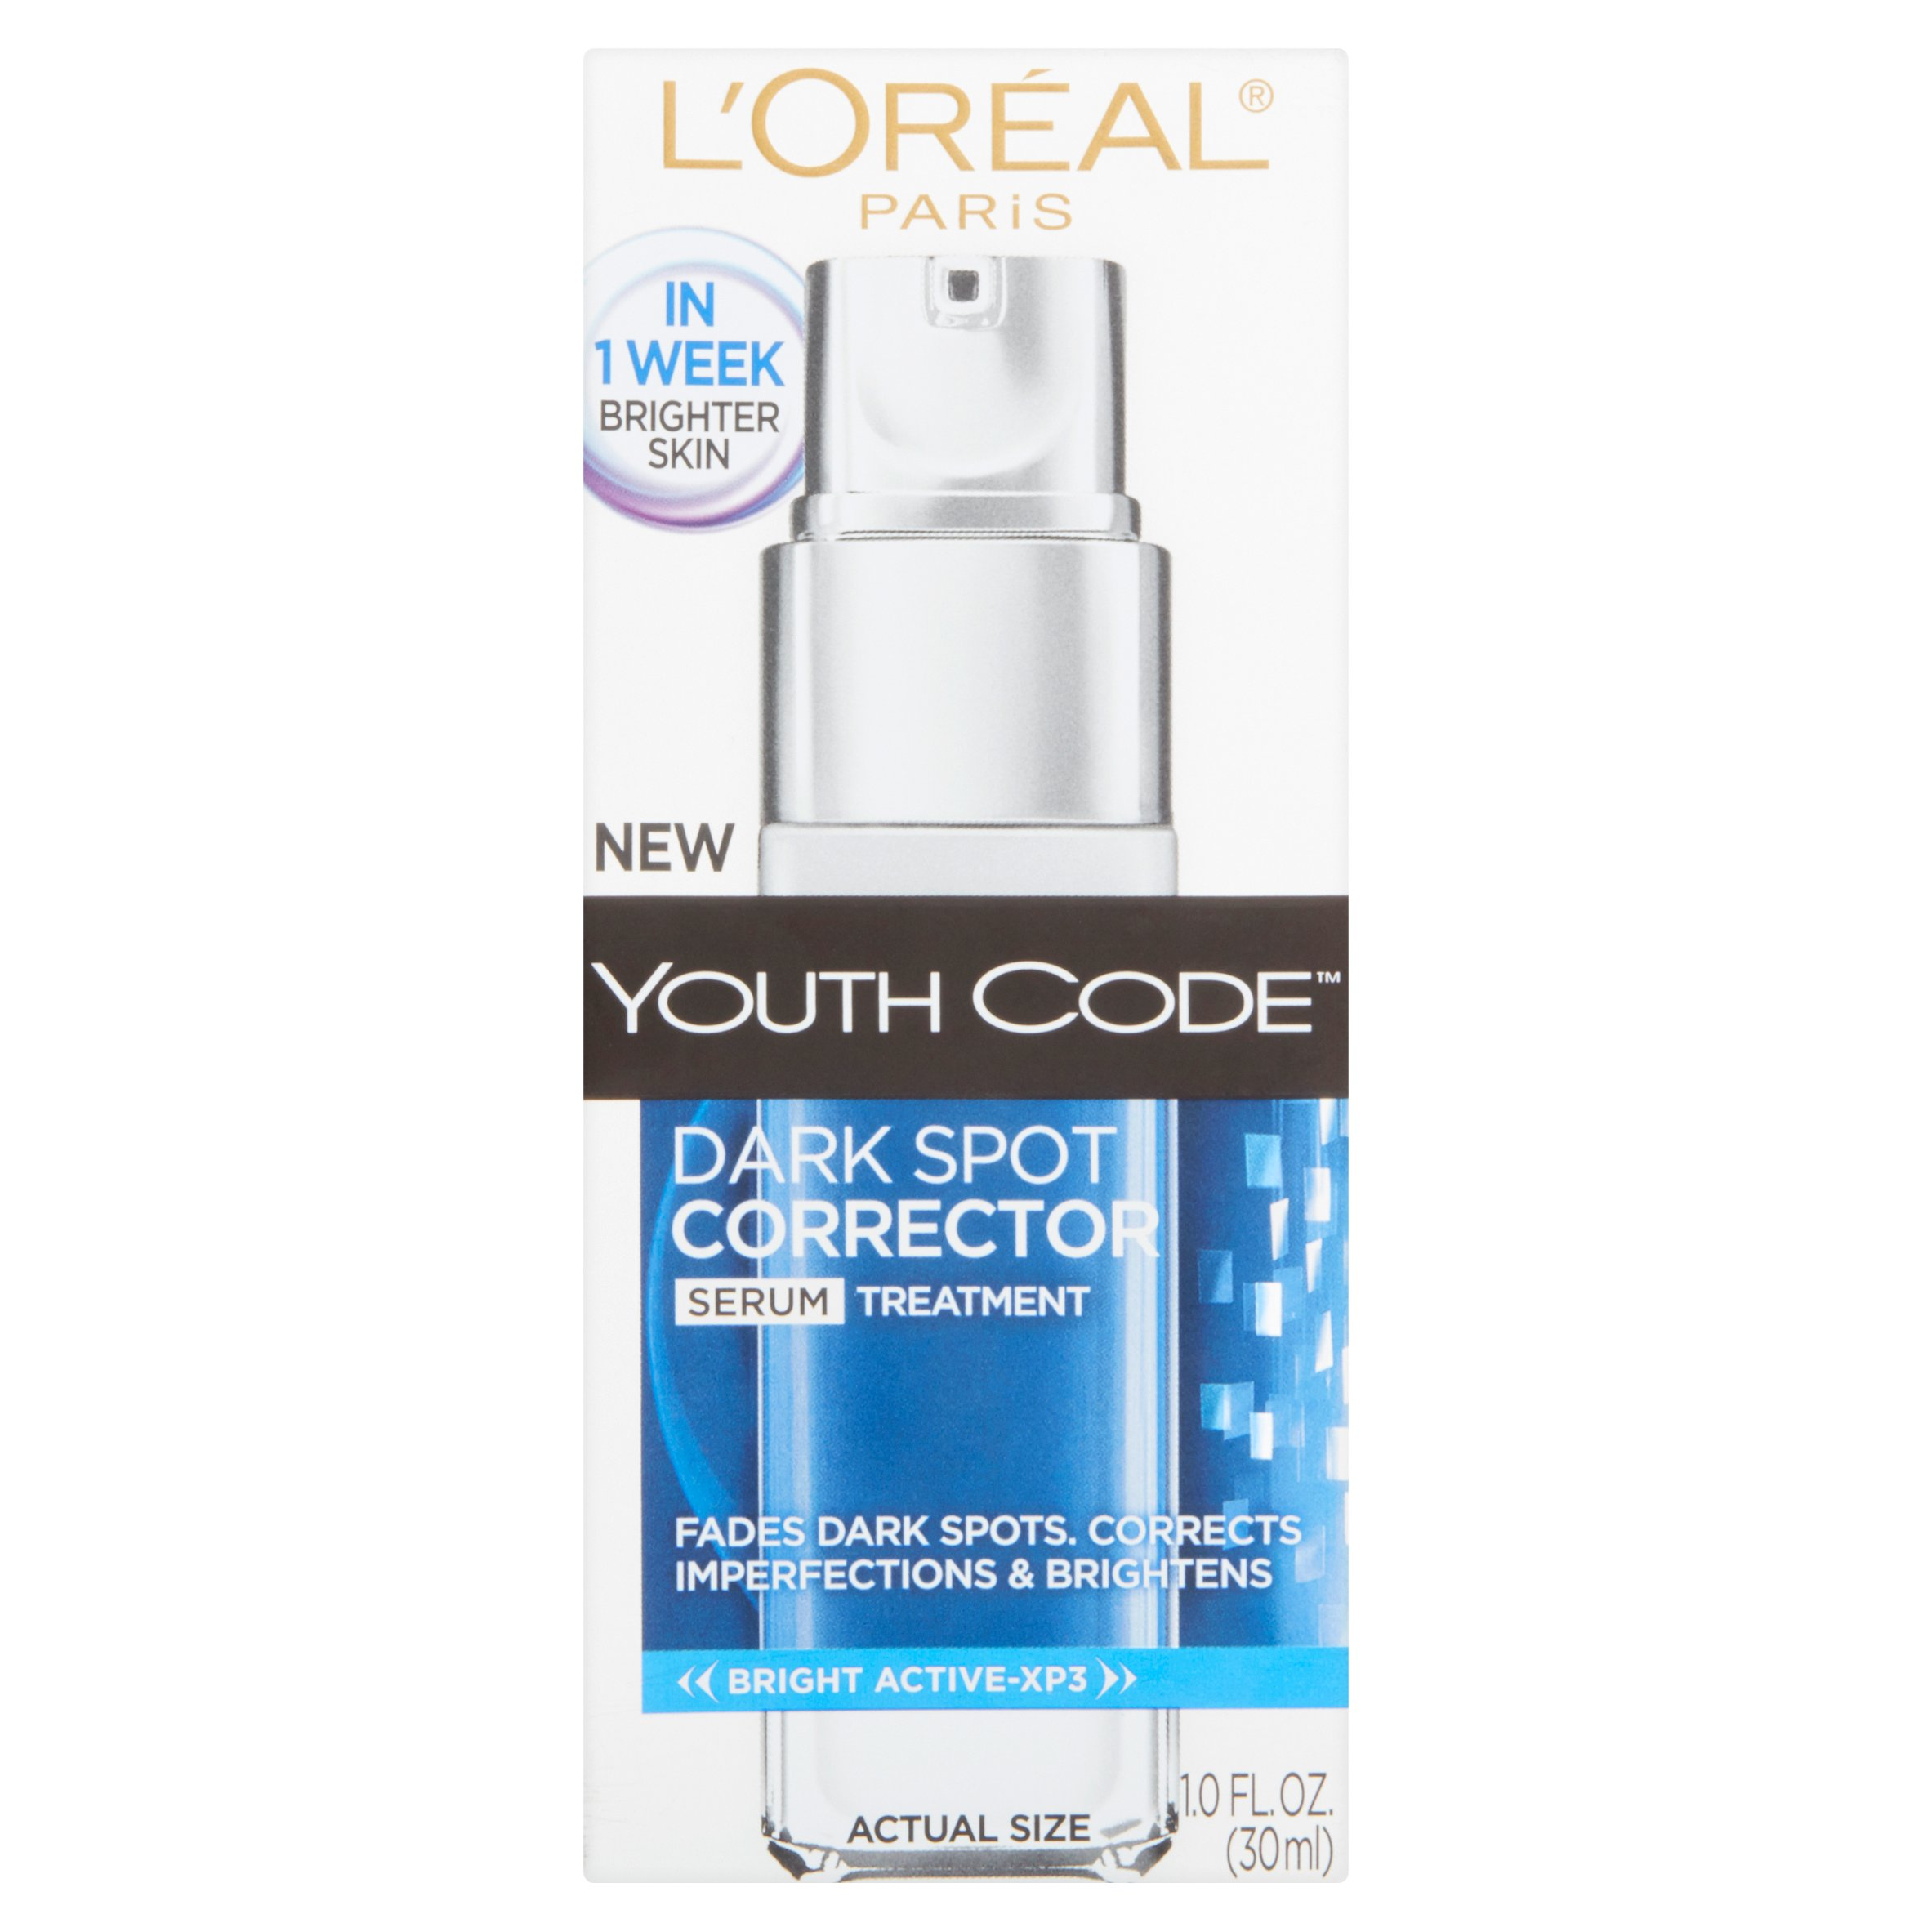 L'Oreal Paris Youth Code Serum Corrector Daily Treatment, 1.0 FL OZ